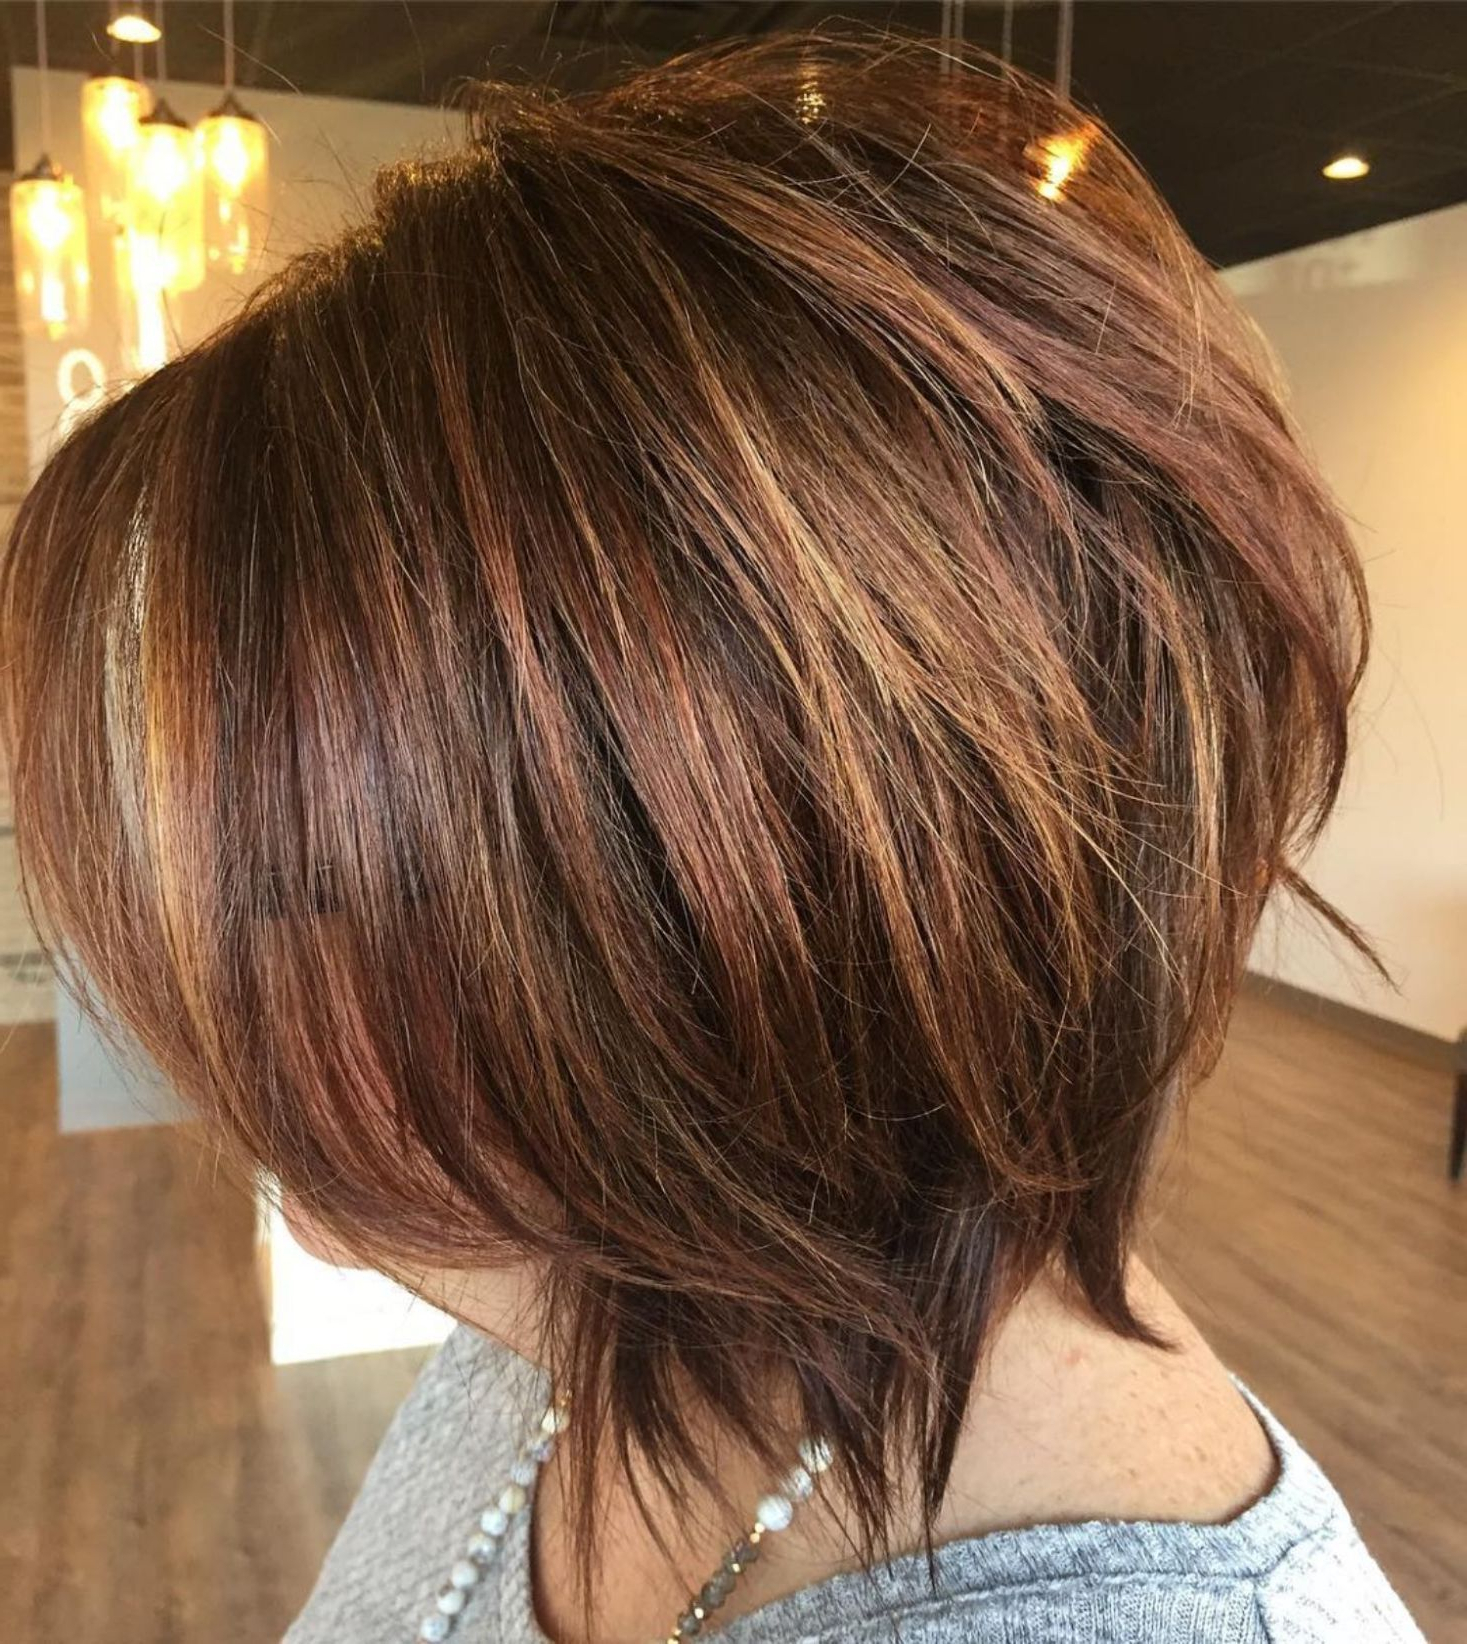 Pin On Beauty Regarding Current Razored Shaggy Chocolate And Caramel Bob Hairstyles (View 7 of 20)